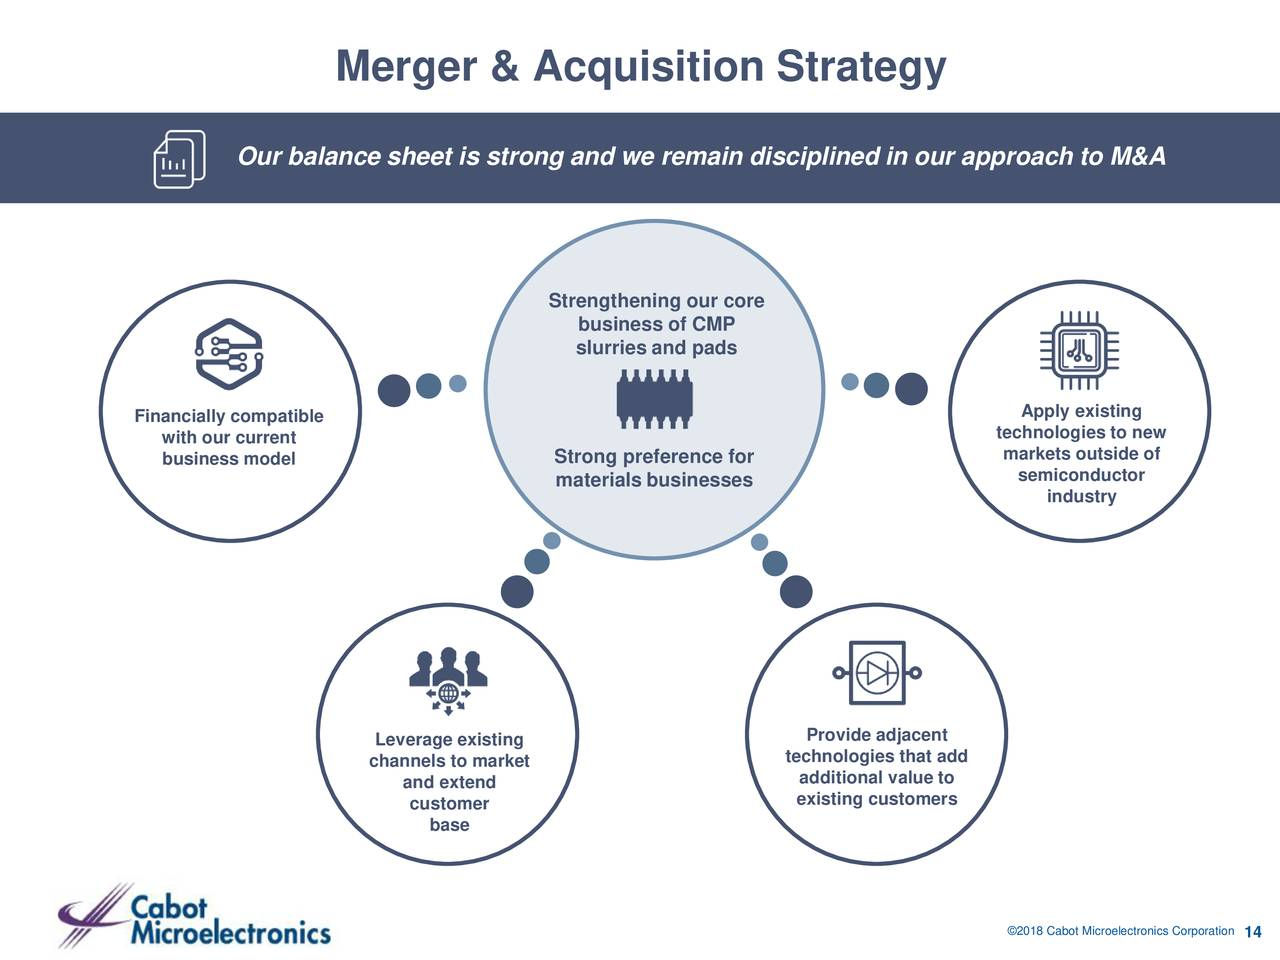 merger acquisition strategy Essay on merger, acquisition, and international strategies  analysis of macy's inc strategy prior to acquisition the acquisition that had the most notable impact on the recent development of macy's inc was the acquisition of may department stores in 2005 before the acquisition, macy's inc entered a period of diversification and.